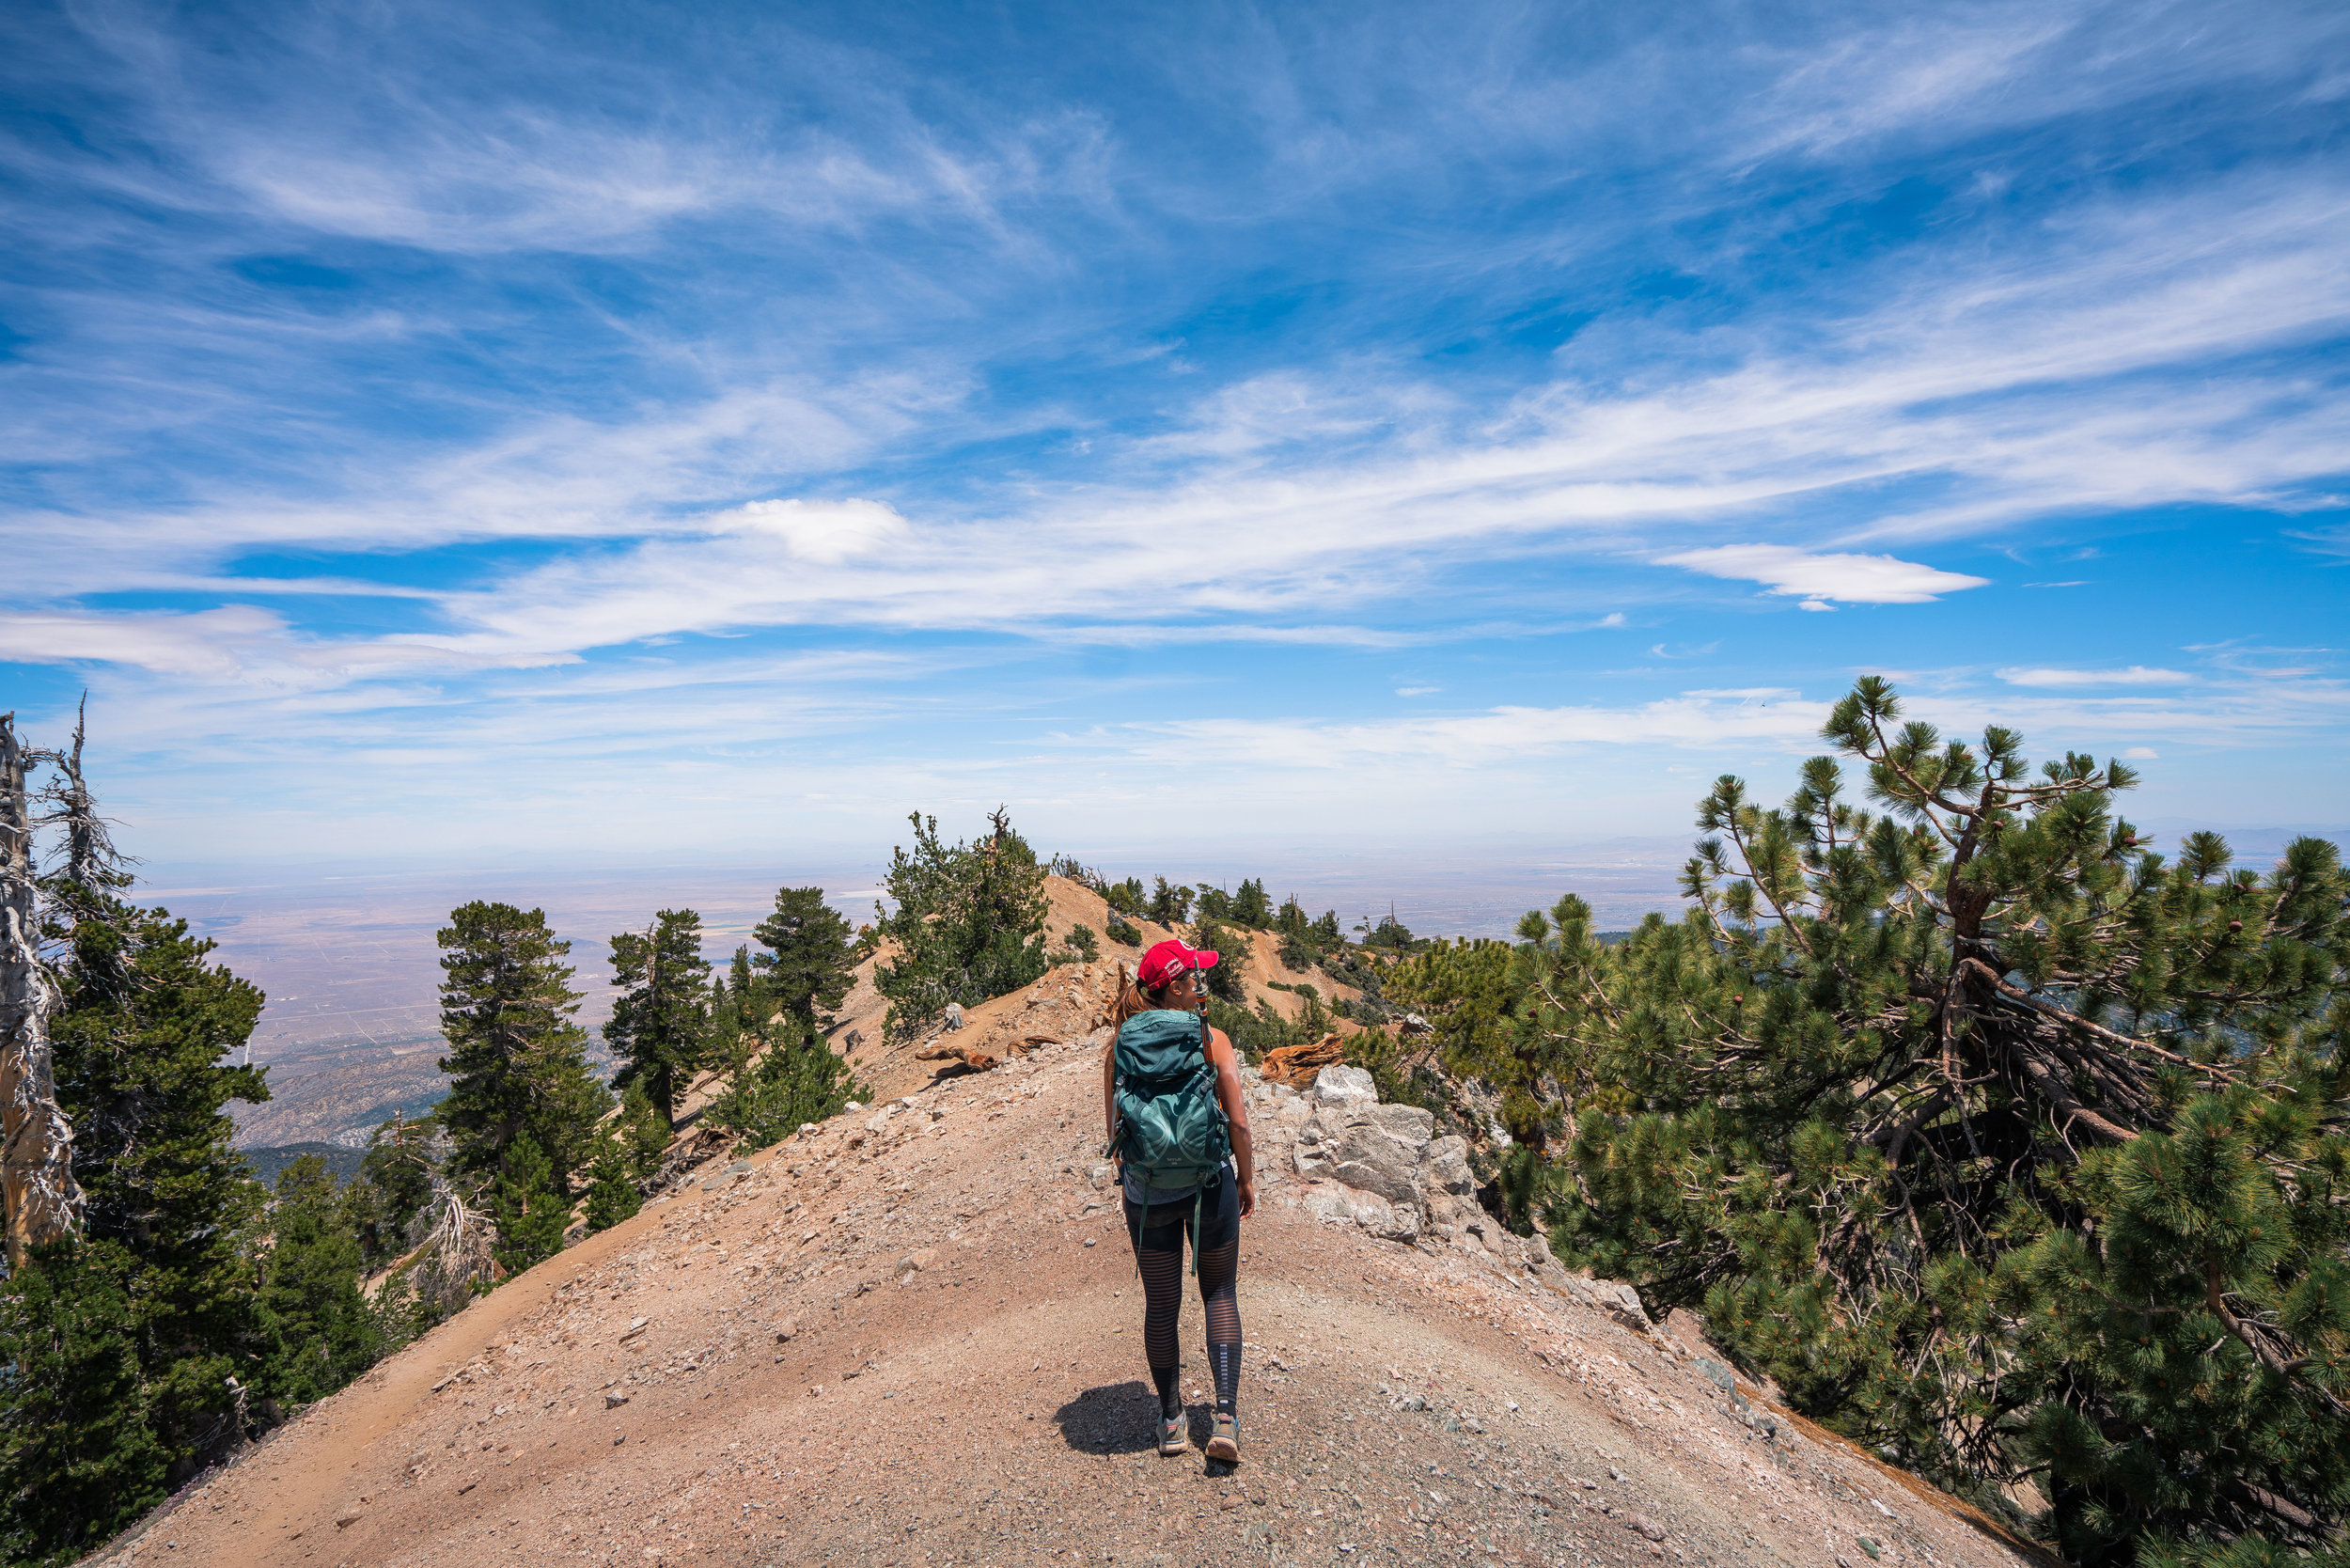 Mount Baden Powell ridge line